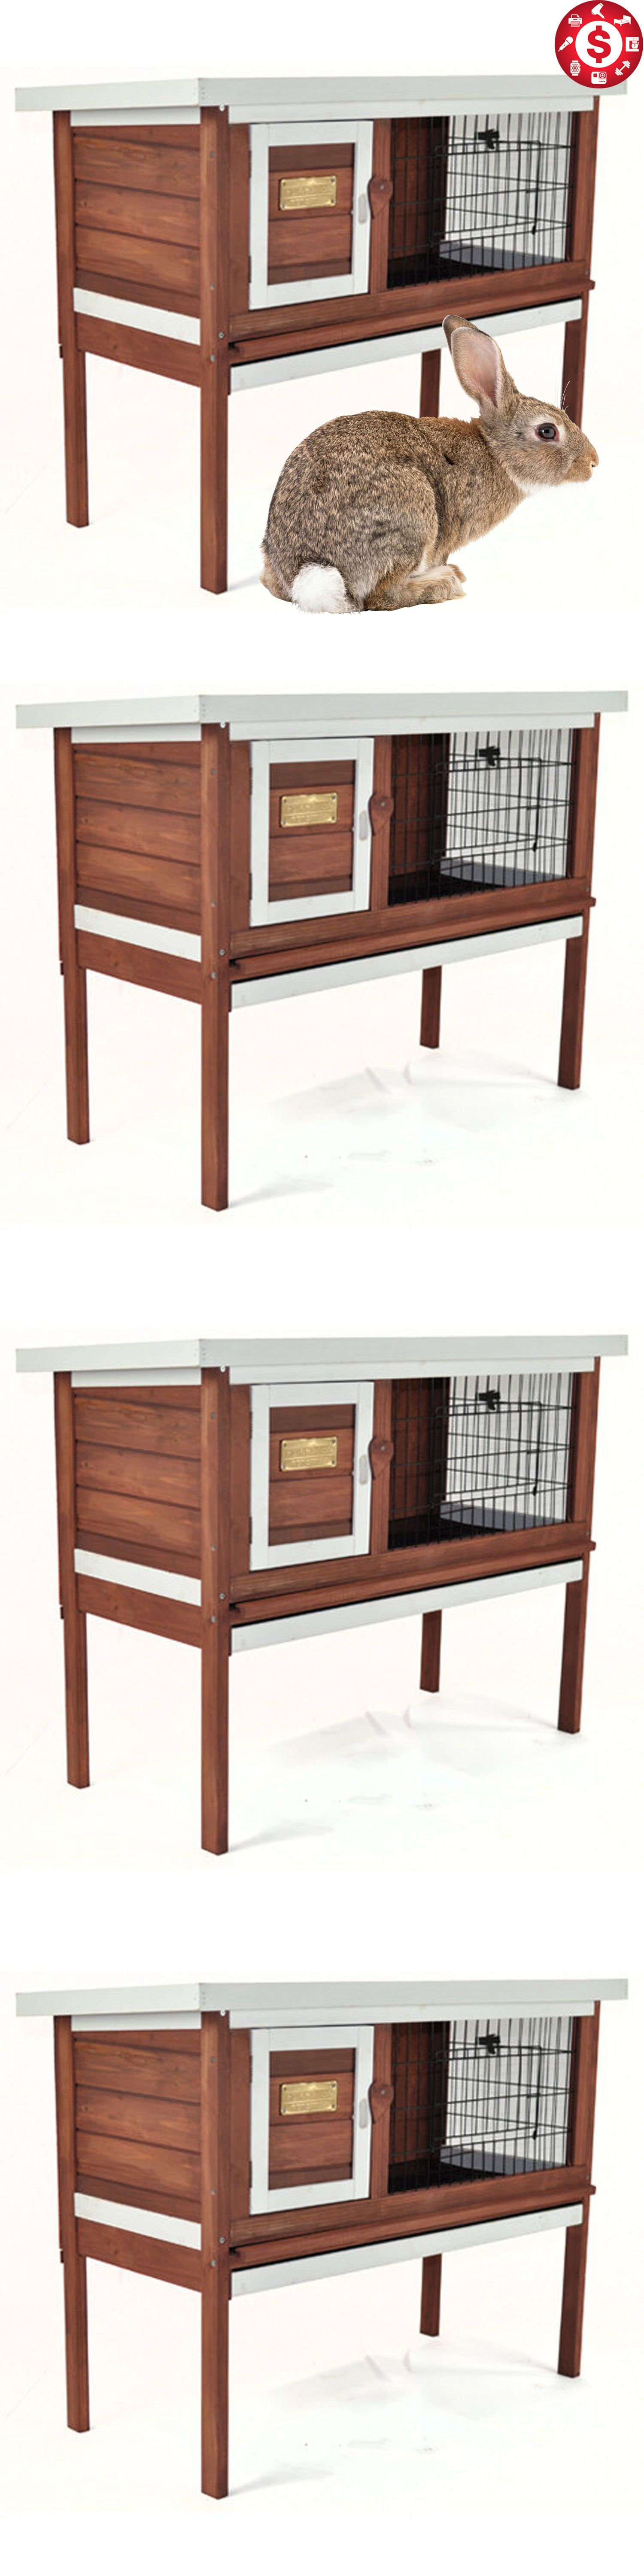 Home Woodshop Tools | Pet cage, Animal house and Small animals